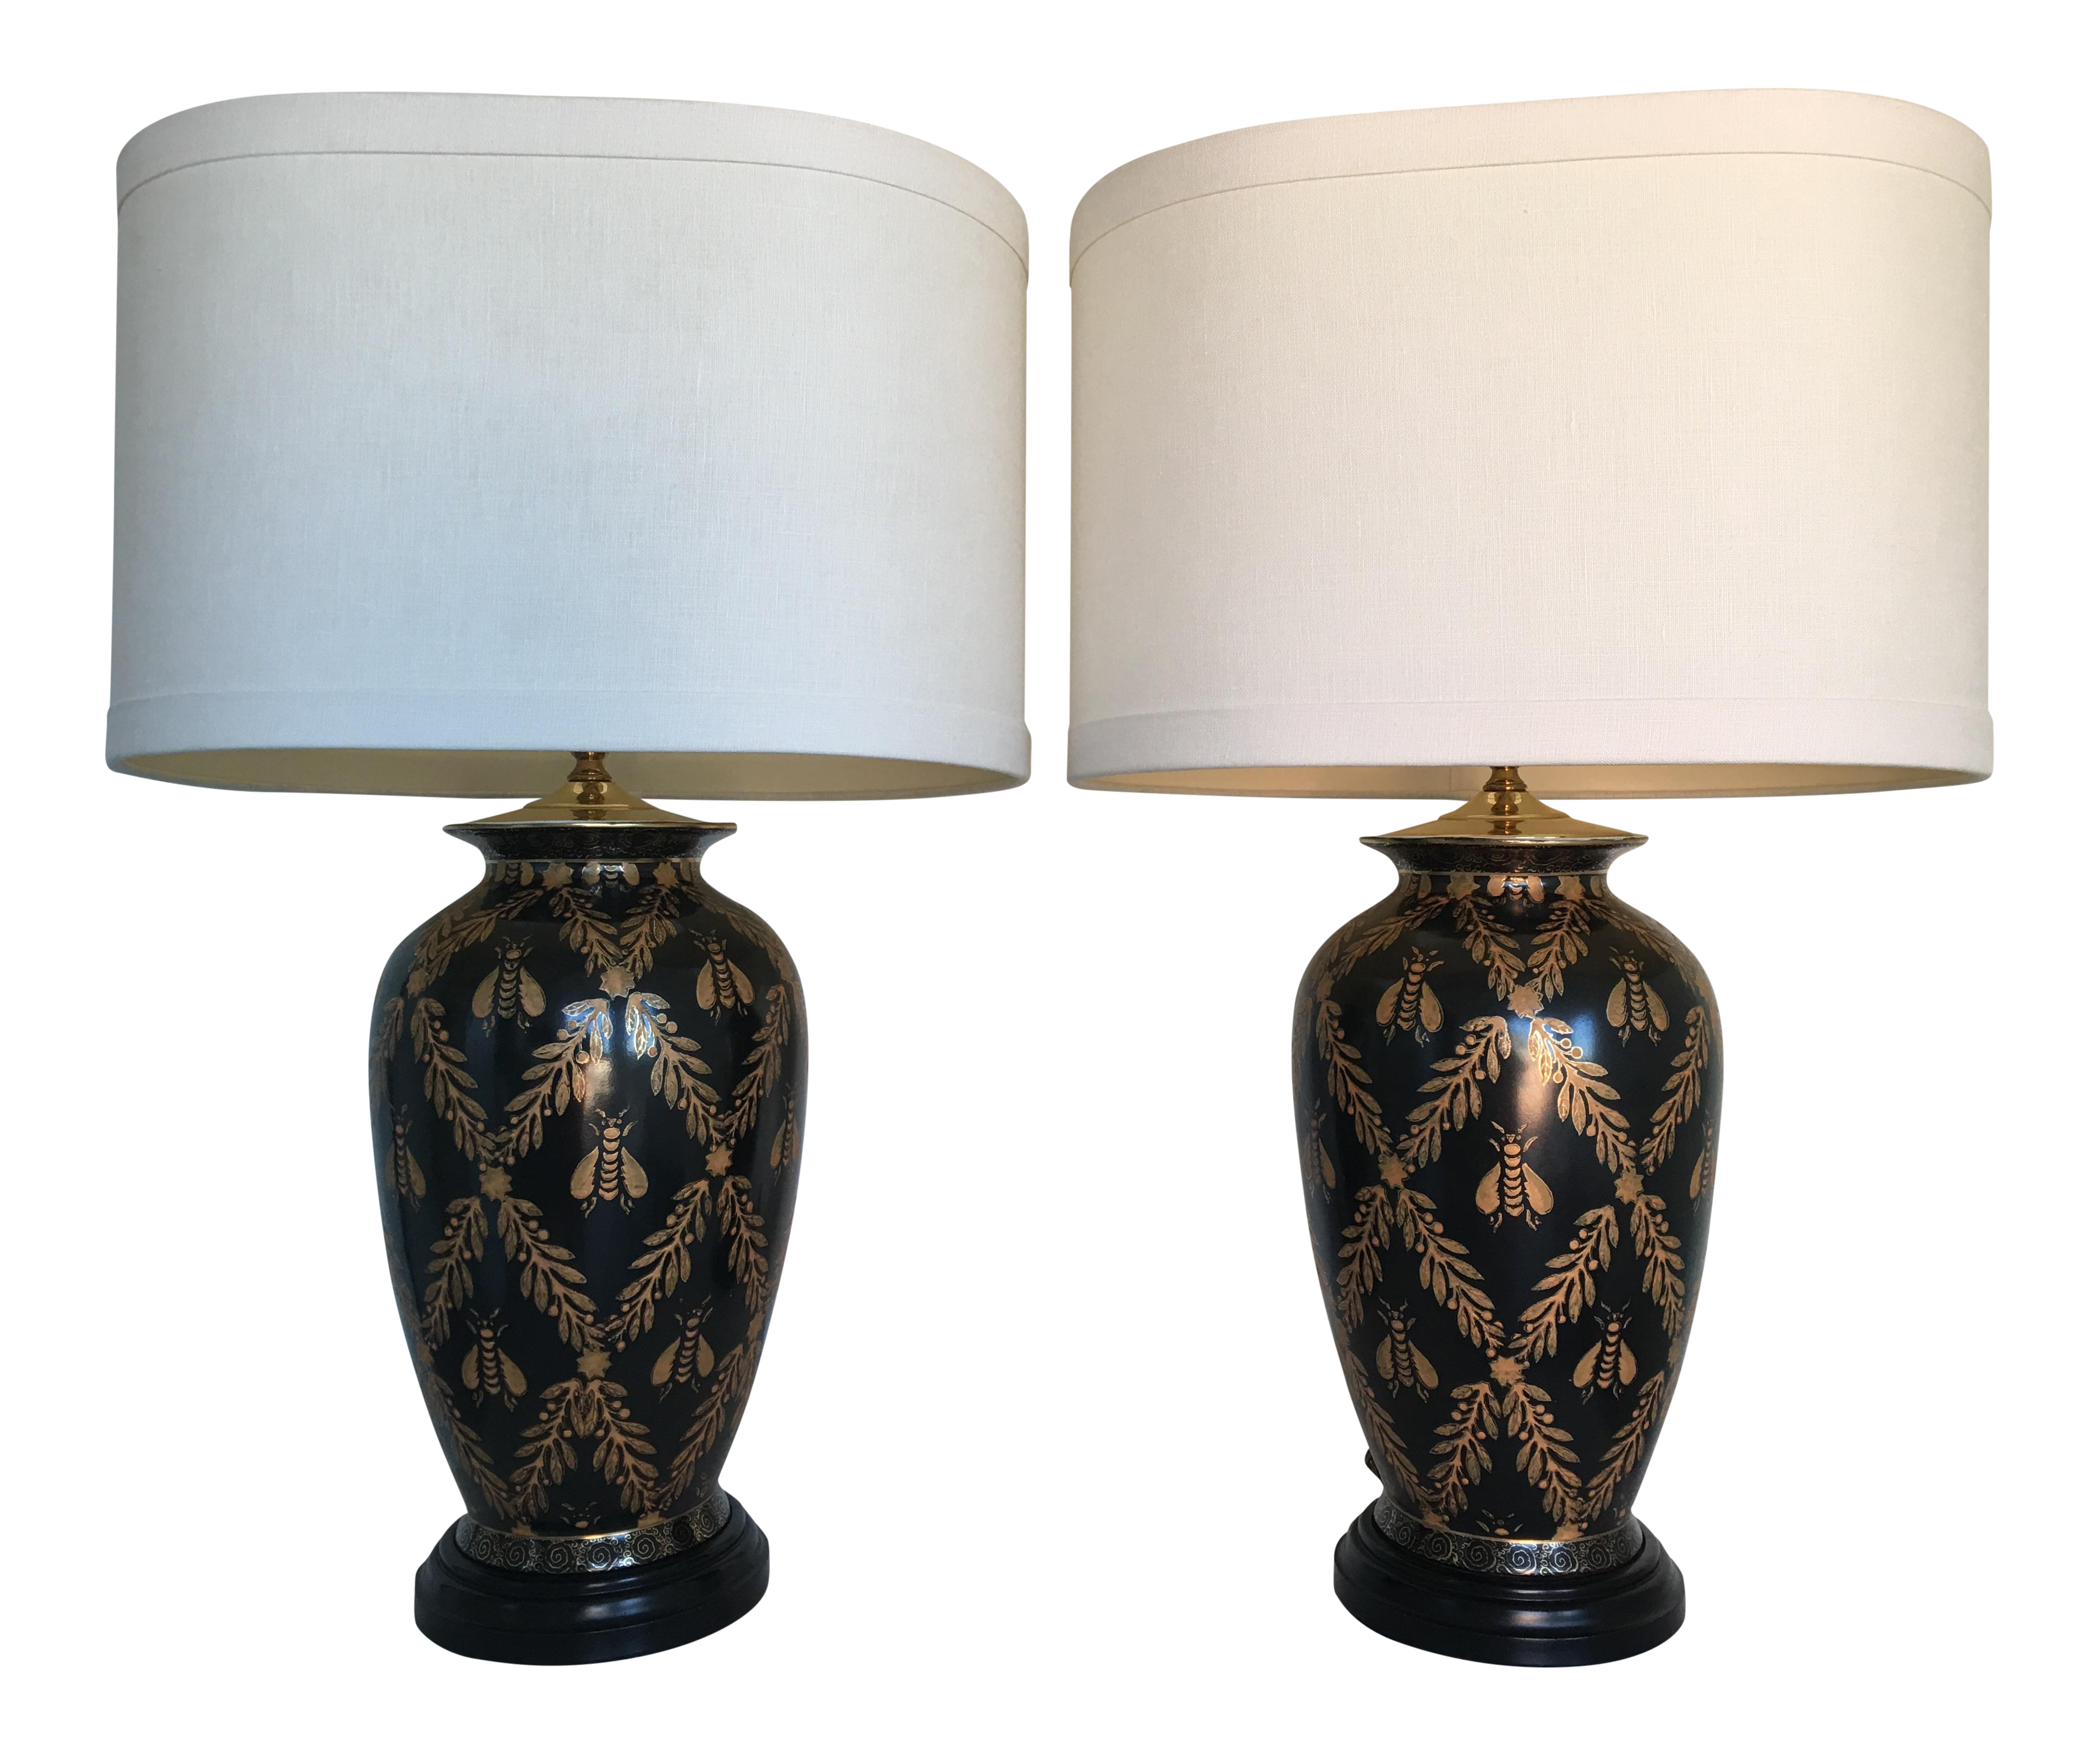 European Cloisonne Style Bee Lamps a Pair Chairish : european cloisonne style bee lamps a pair 0337aspectfitampwidth640ampheight640 from www.chairish.com size 640 x 640 jpeg 34kB